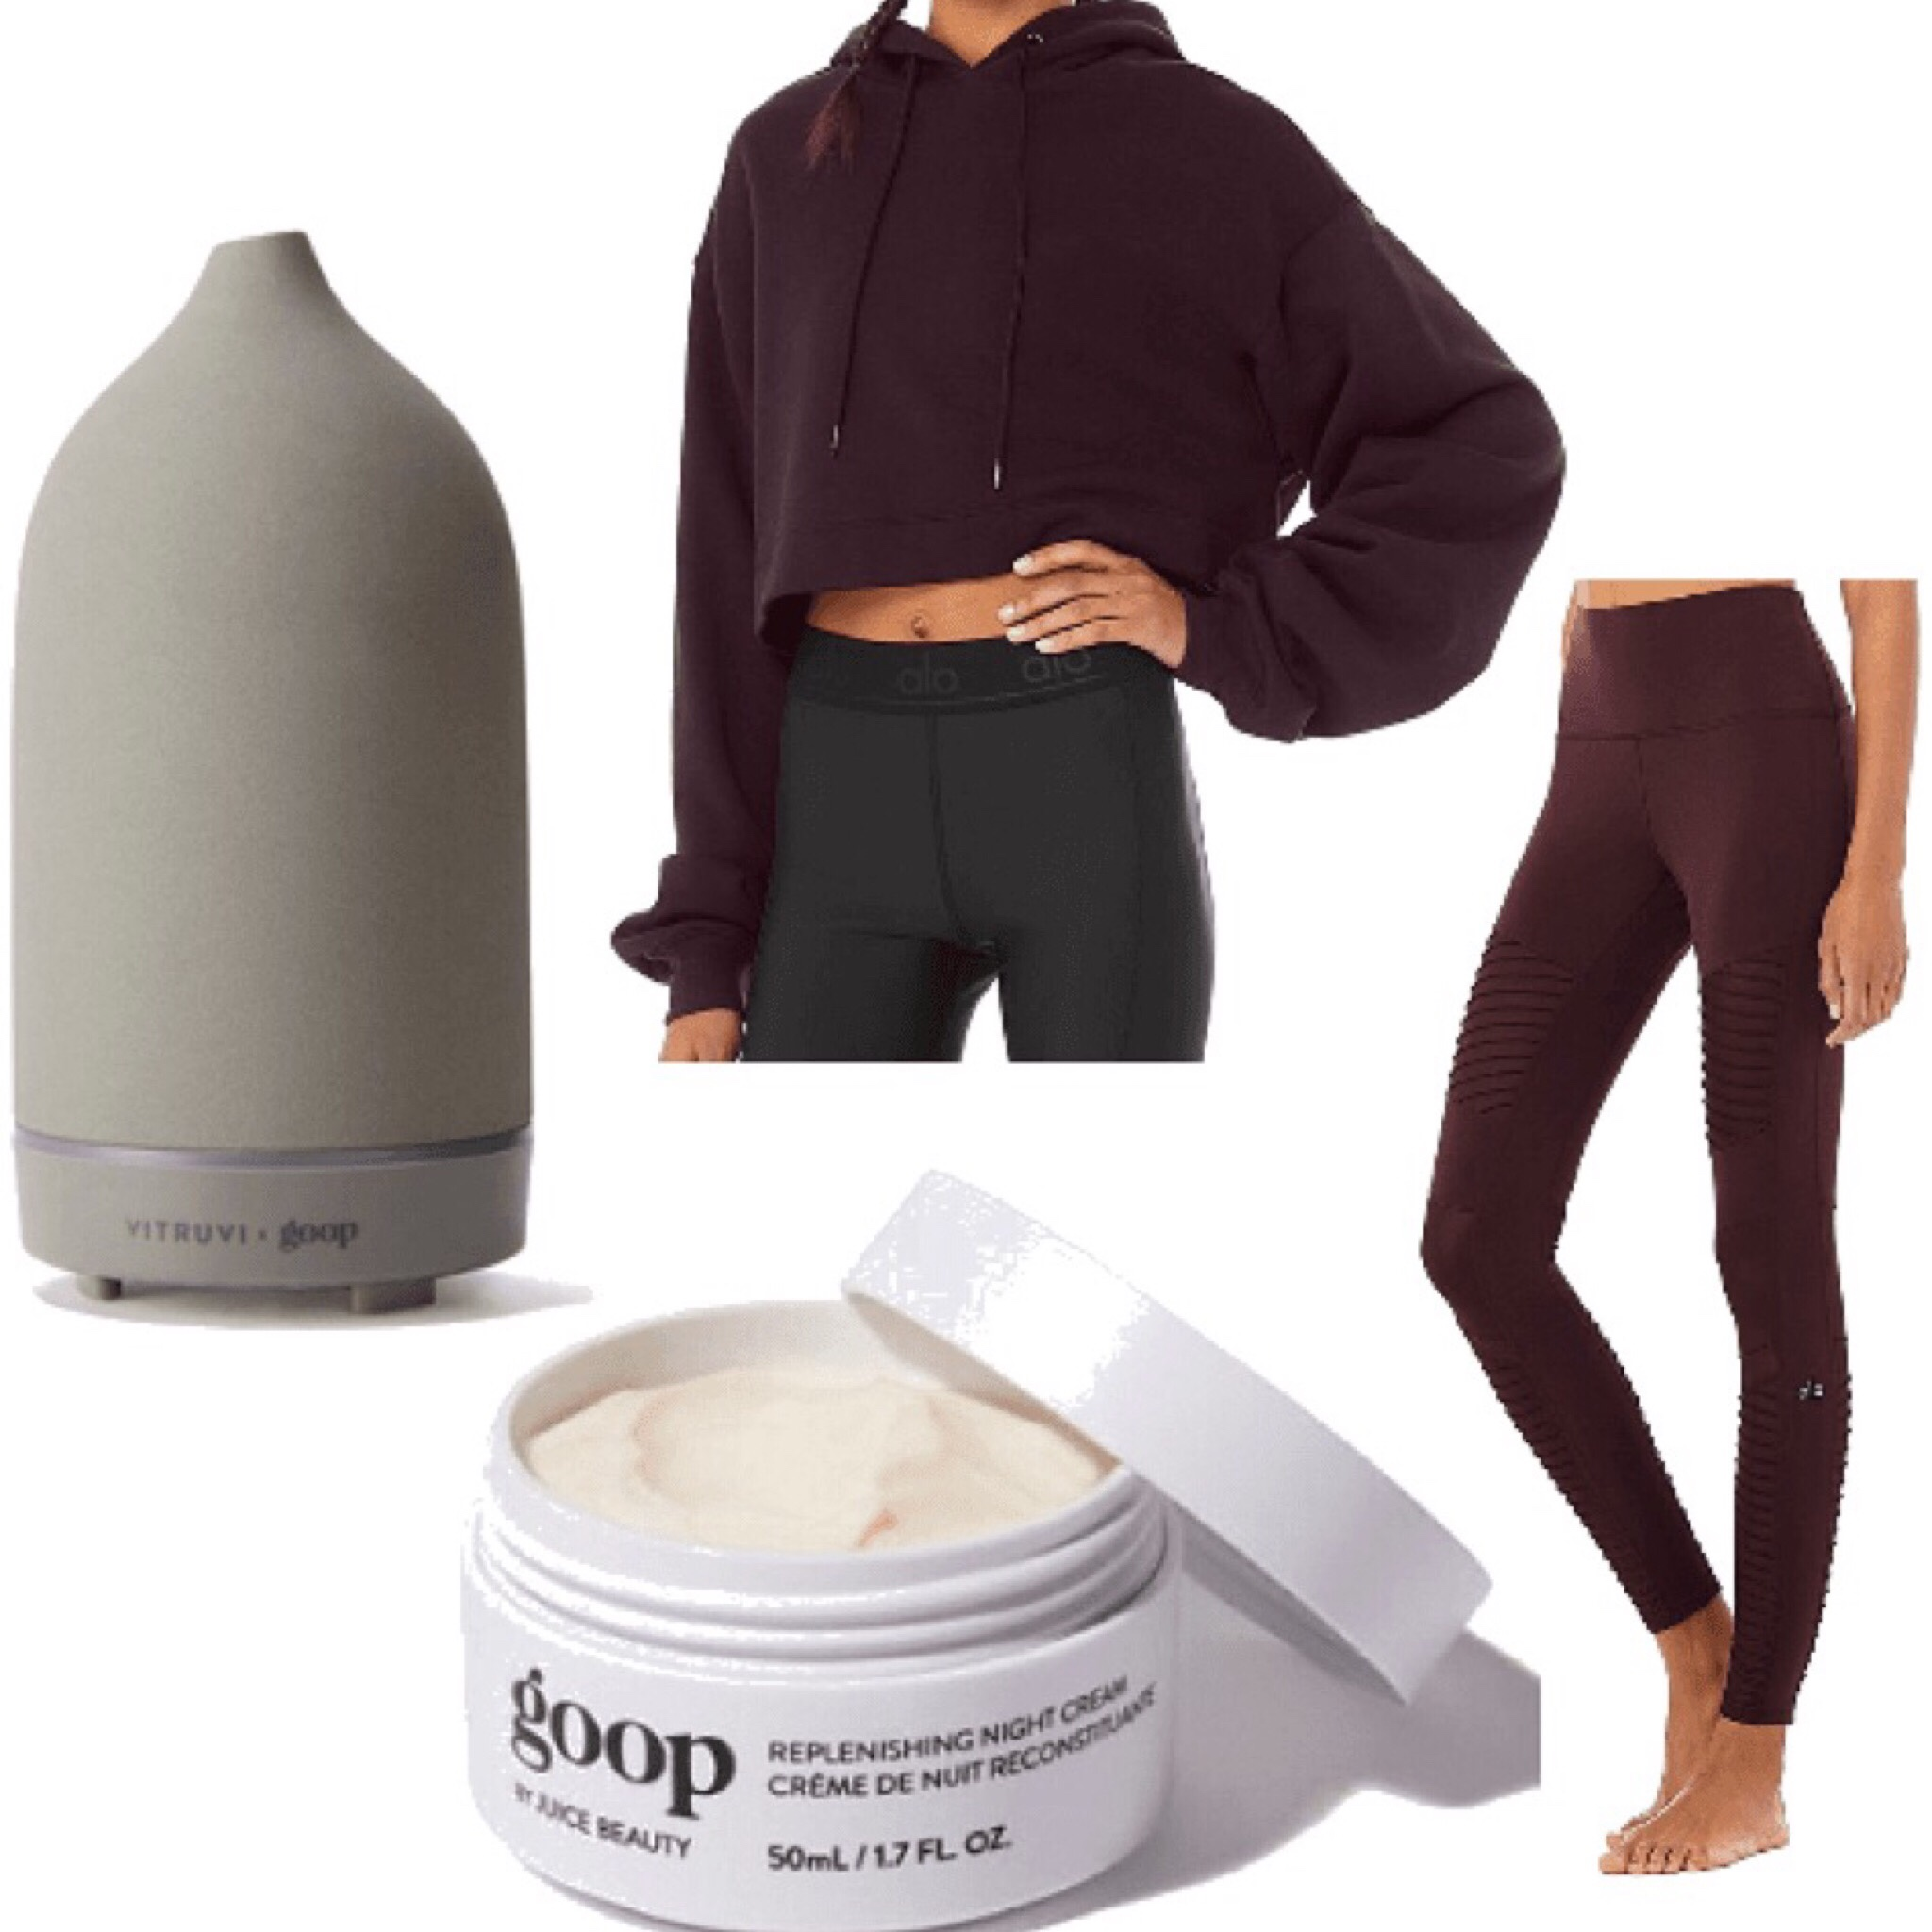 My Top 5 Self Care Items for Fall 2020